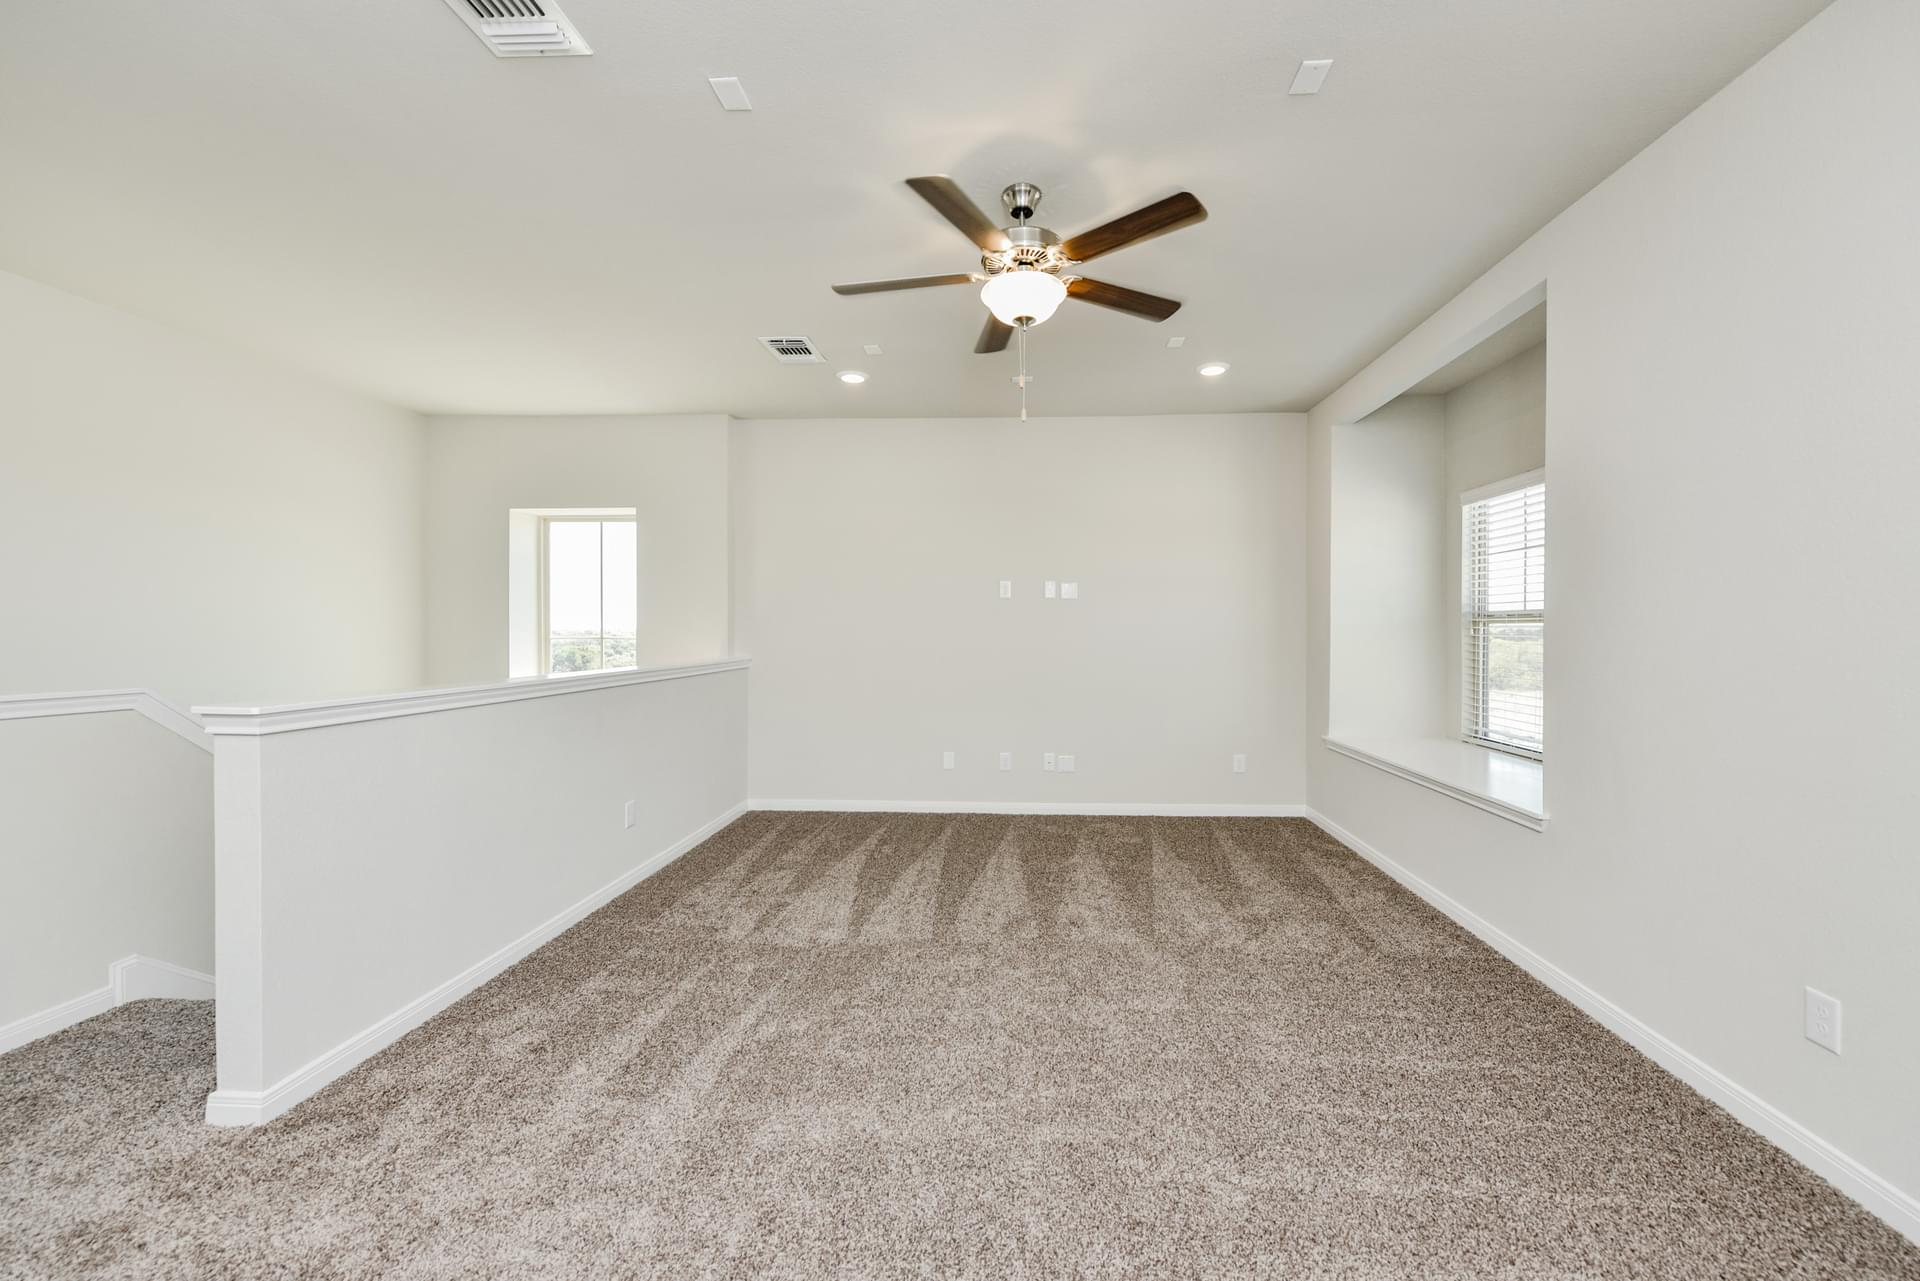 5br New Home in Killeen, TX